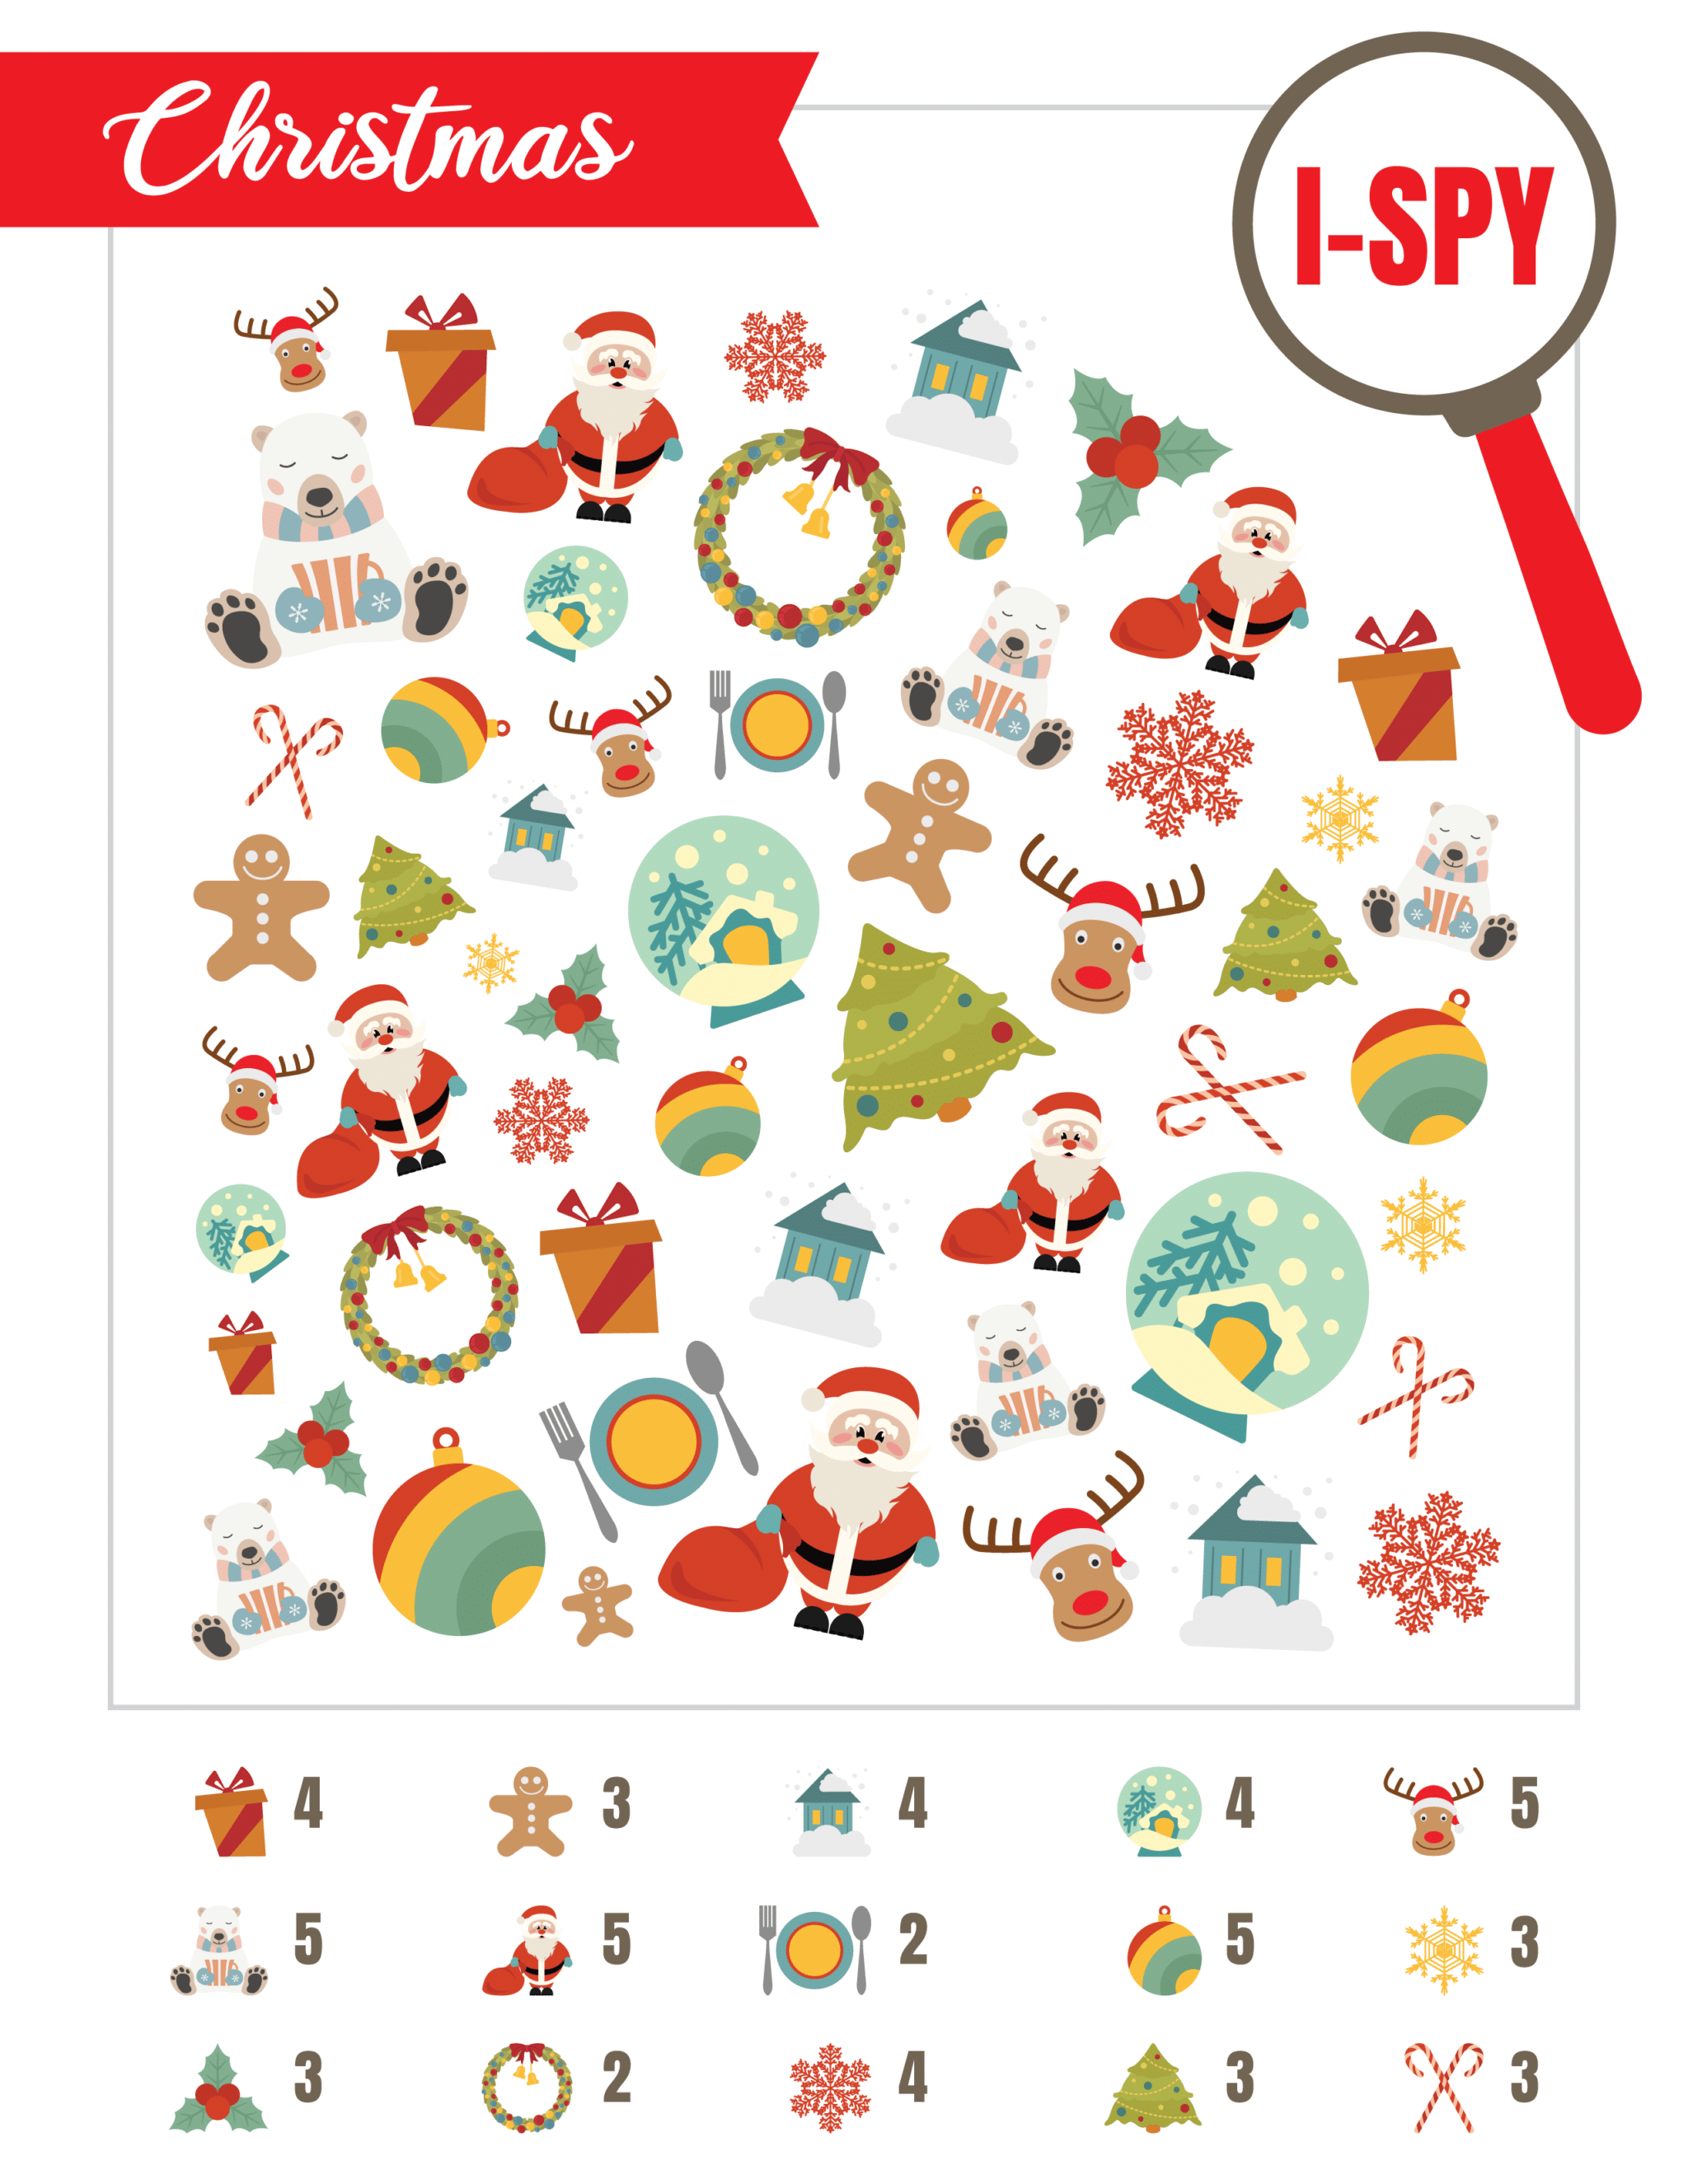 Christmas i-spy game with a red title